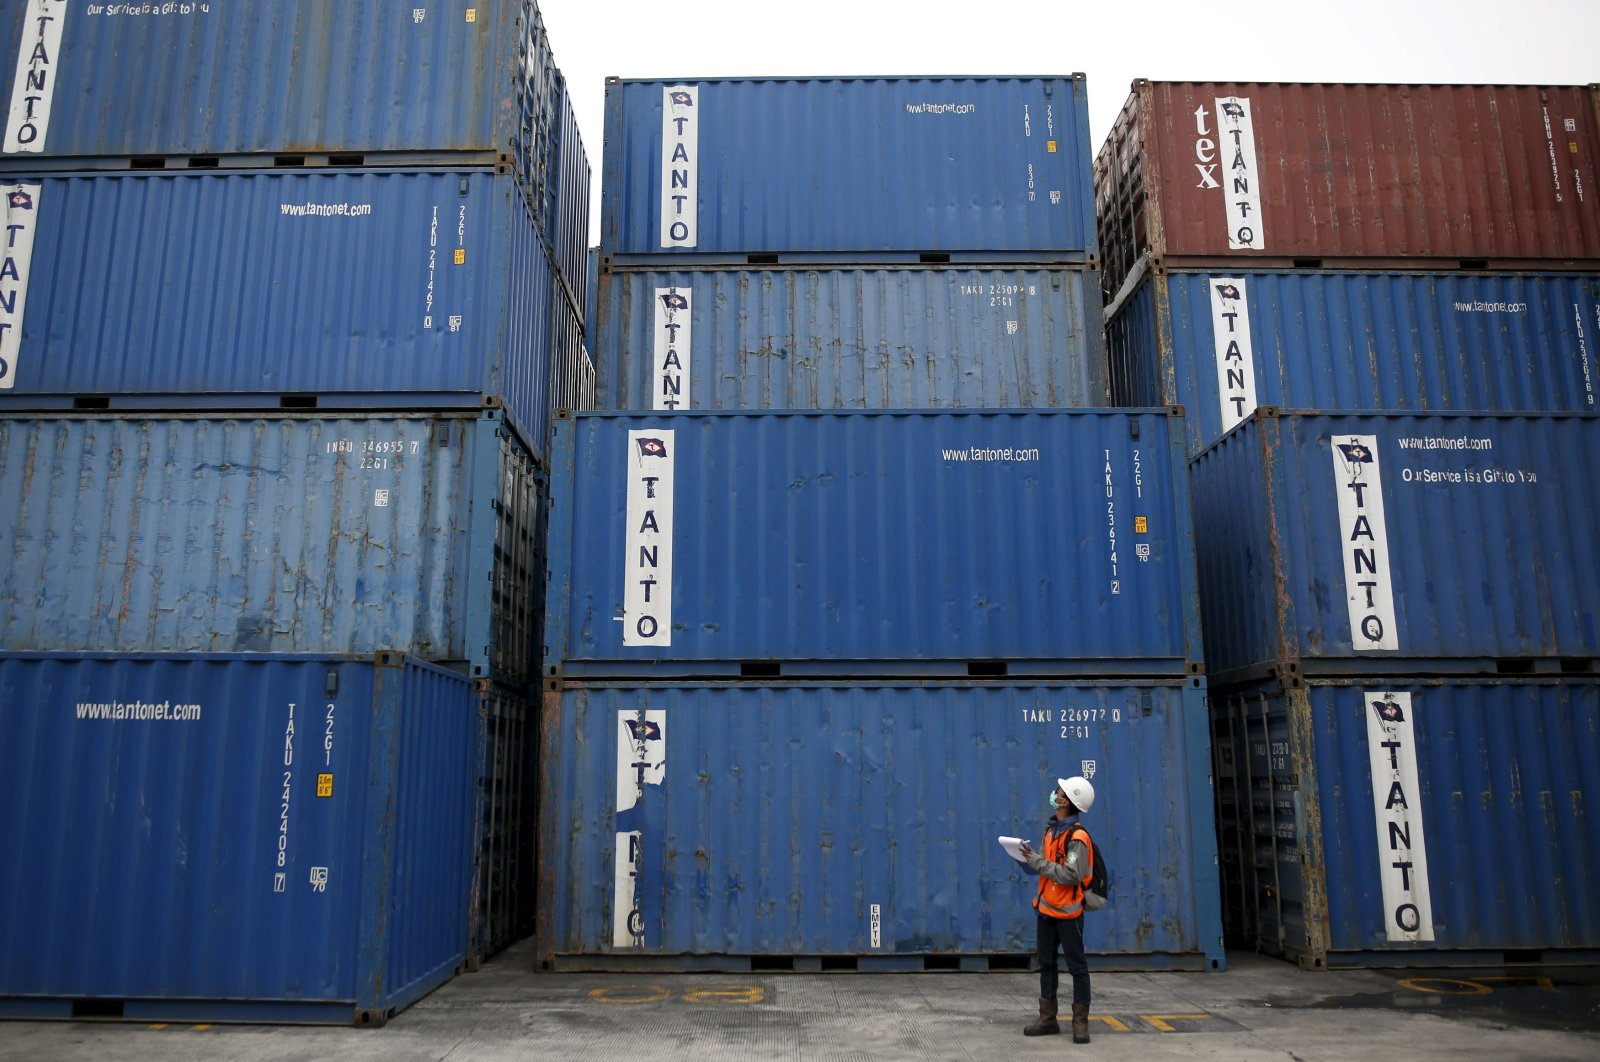 A worker tracks shipping containers at the Port of Tanjung Priok in North Jakarta, Indonesia, Dec. 15, 2015. (Reuters Photo)